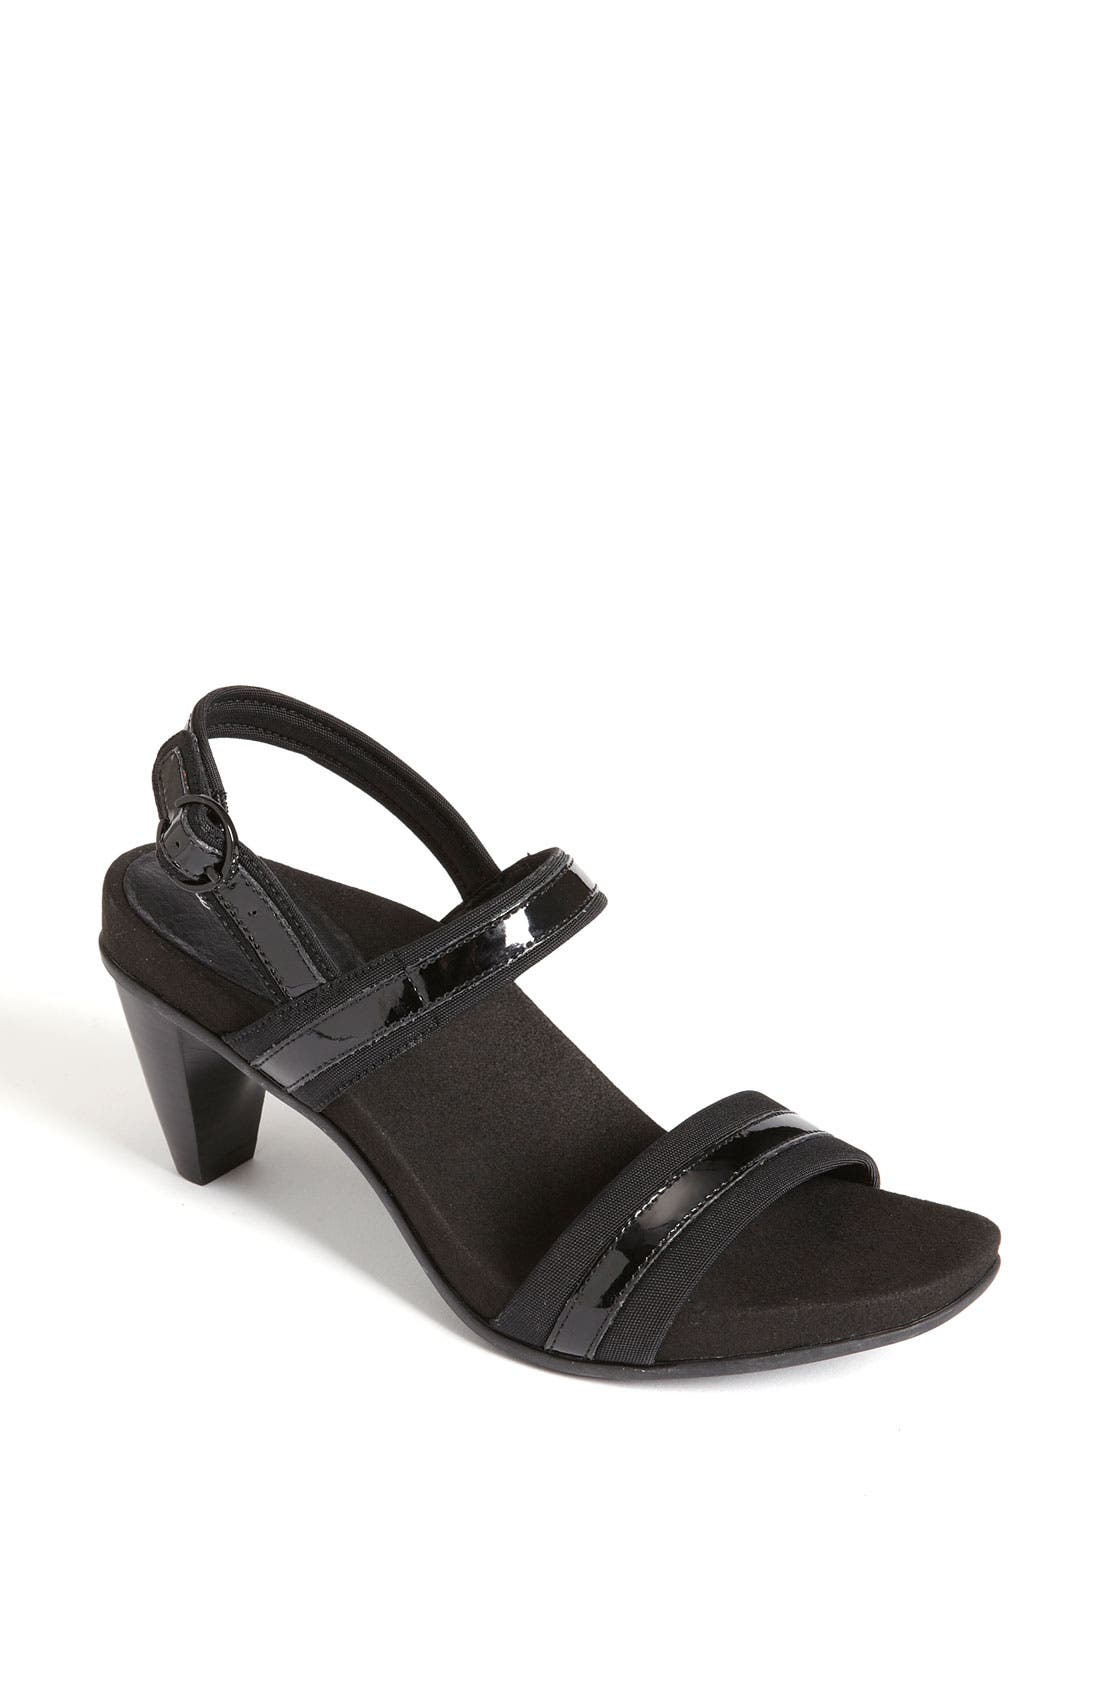 Alternate Image 1 Selected - Aetrex 'Kate' Sandal